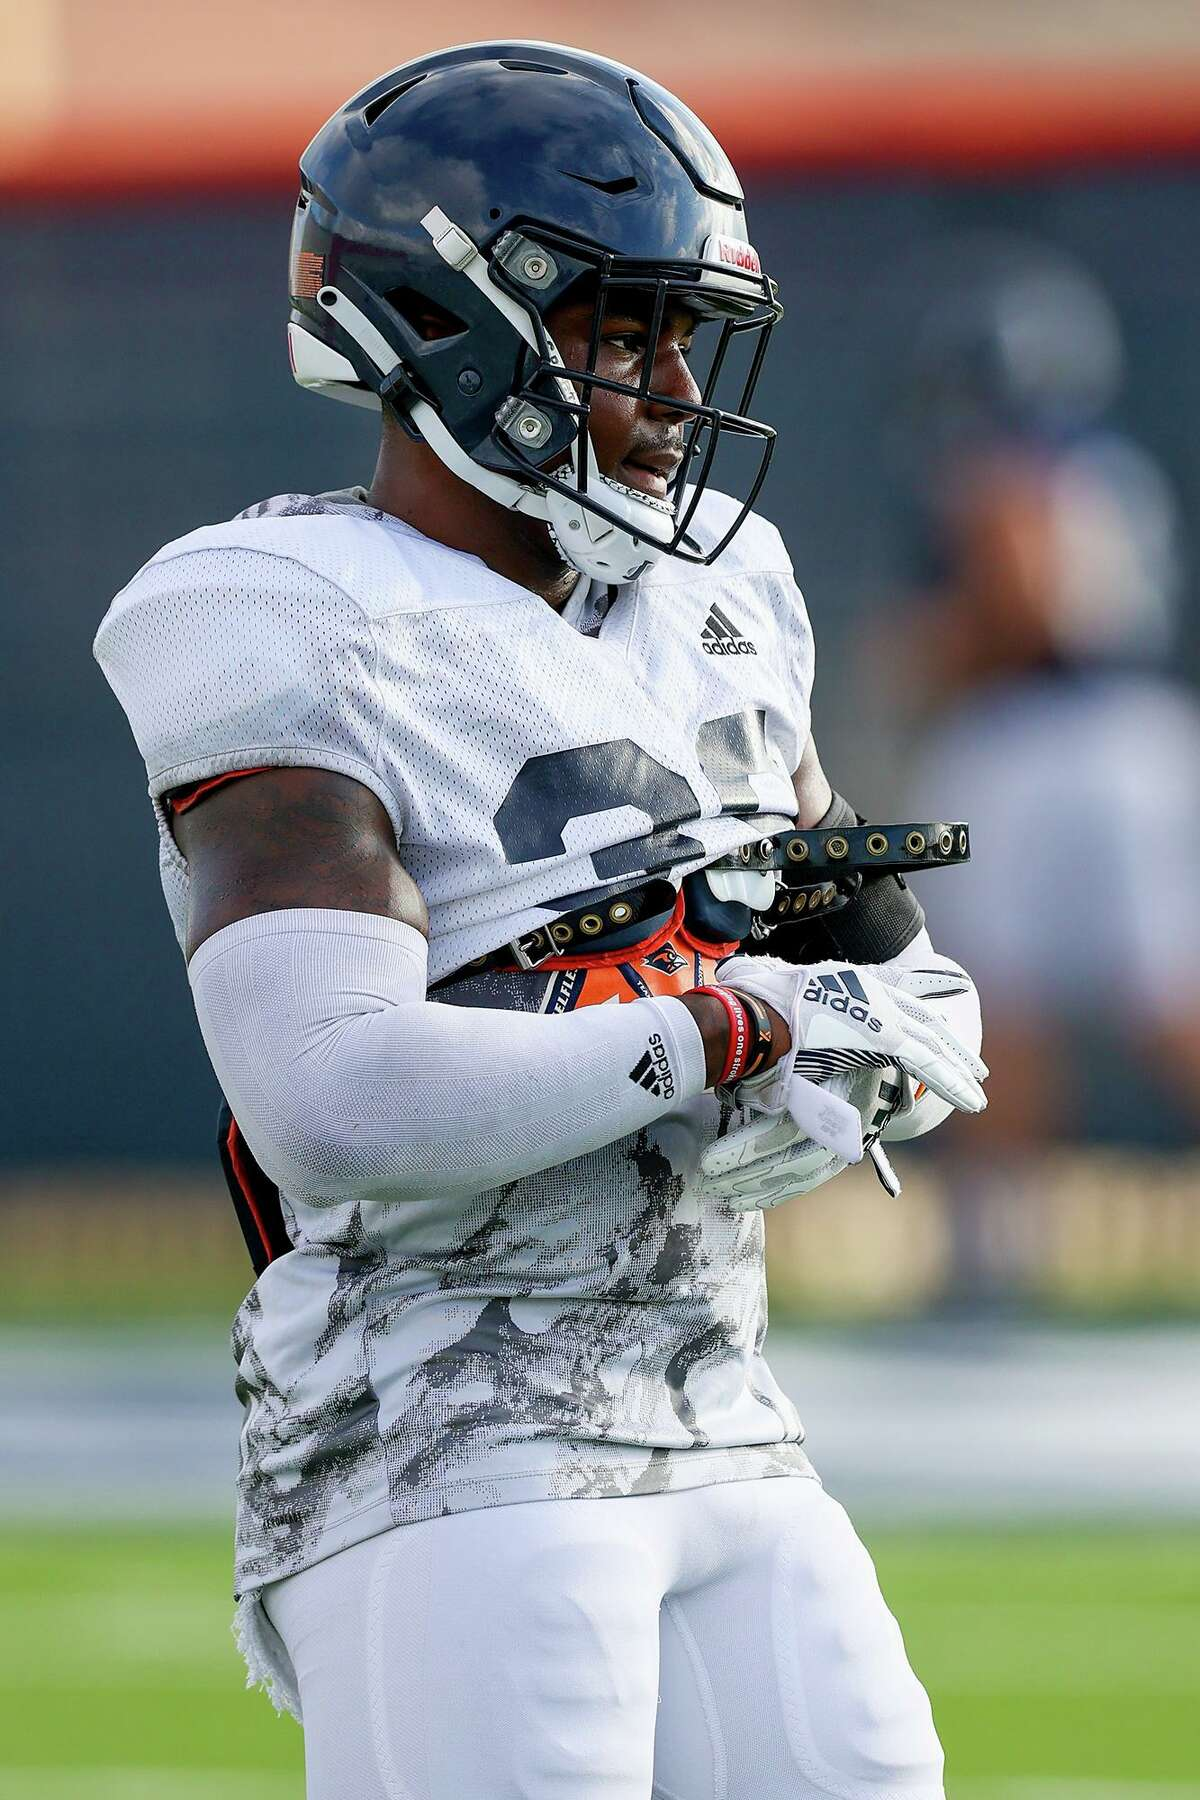 UTSA safety Rashad Wisdom during a morning football practice at the practice fields of the RACE facility on Thursday, Aug. 12, 2021.